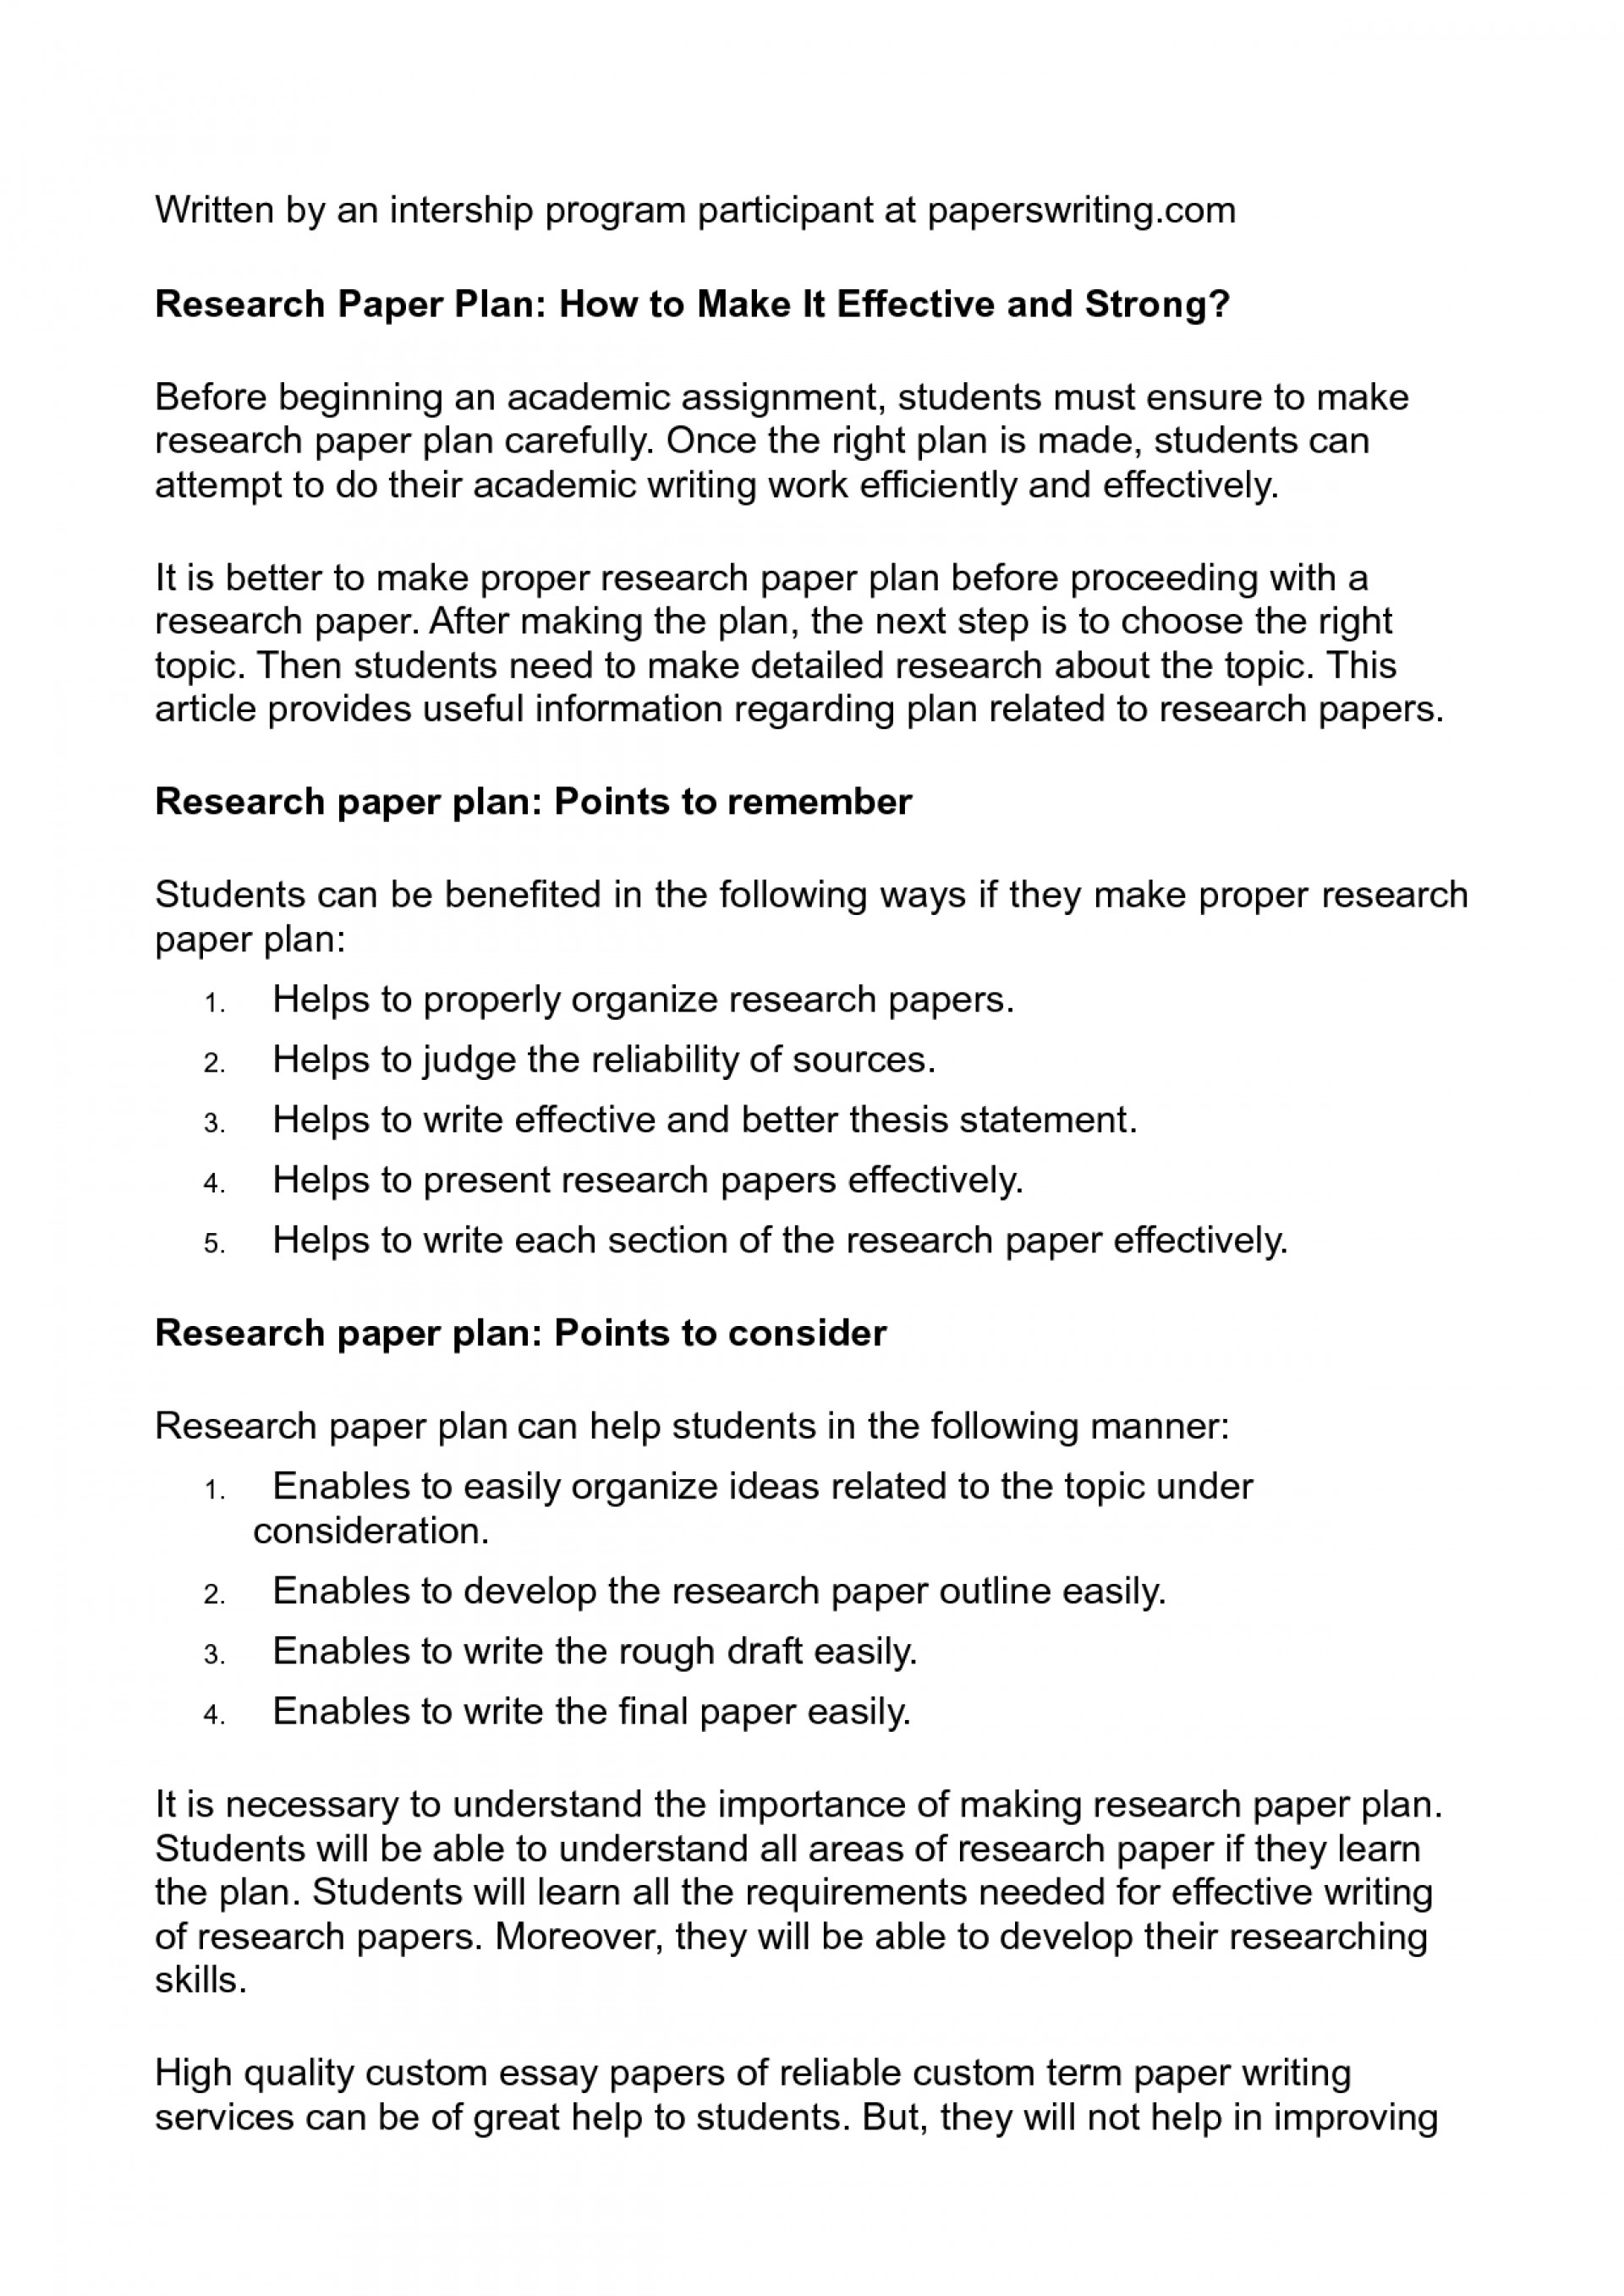 008 Xqj3iznhwu Essay Example How To Write Excellent A Research Proposal Paper In Apa Format Mla 1920